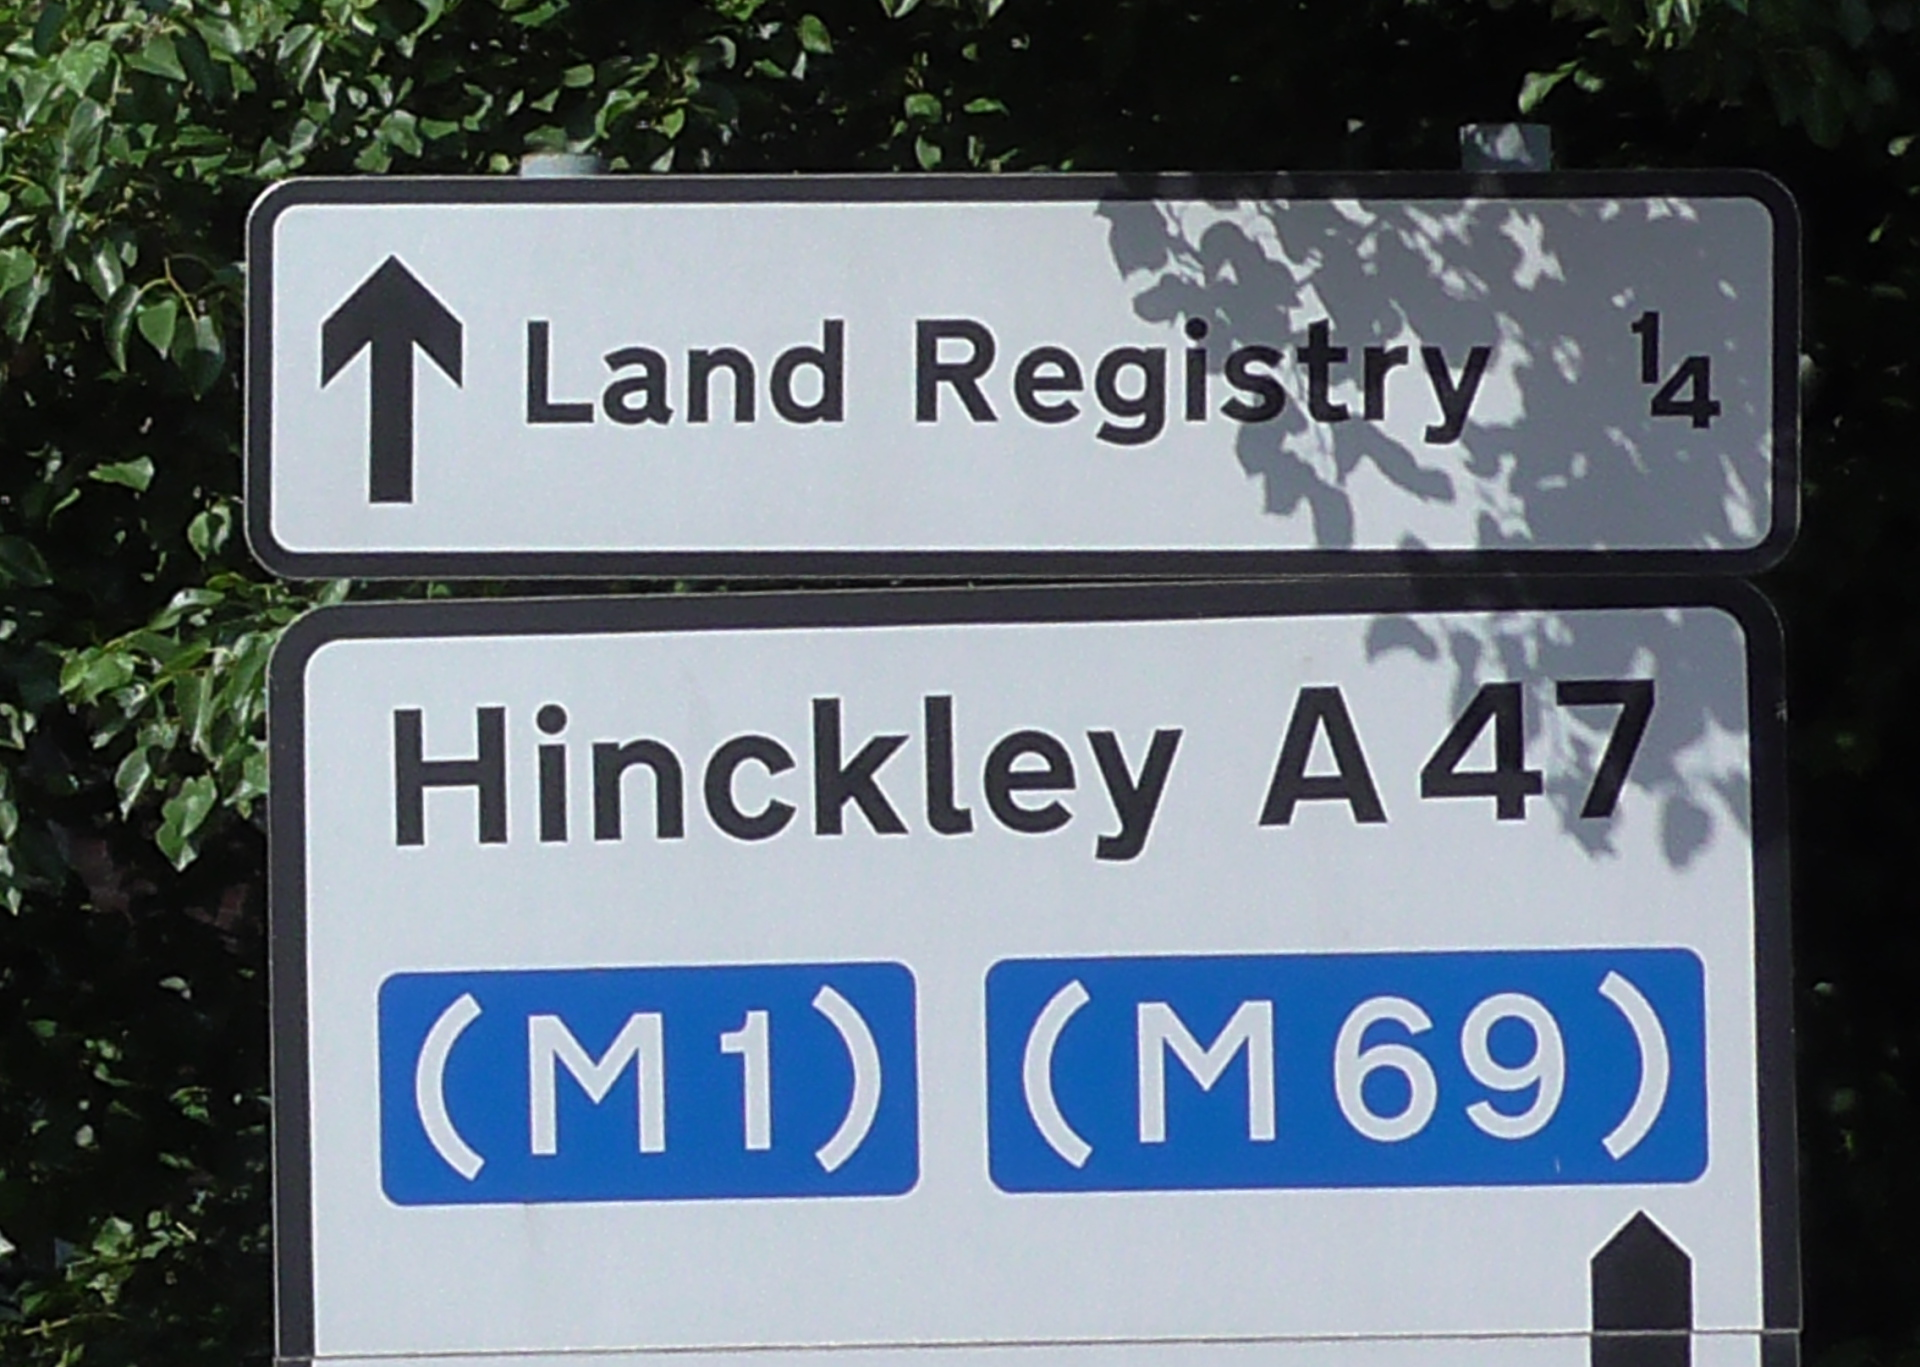 Land Registry, important source of finding identity of building owners and adjoining owners